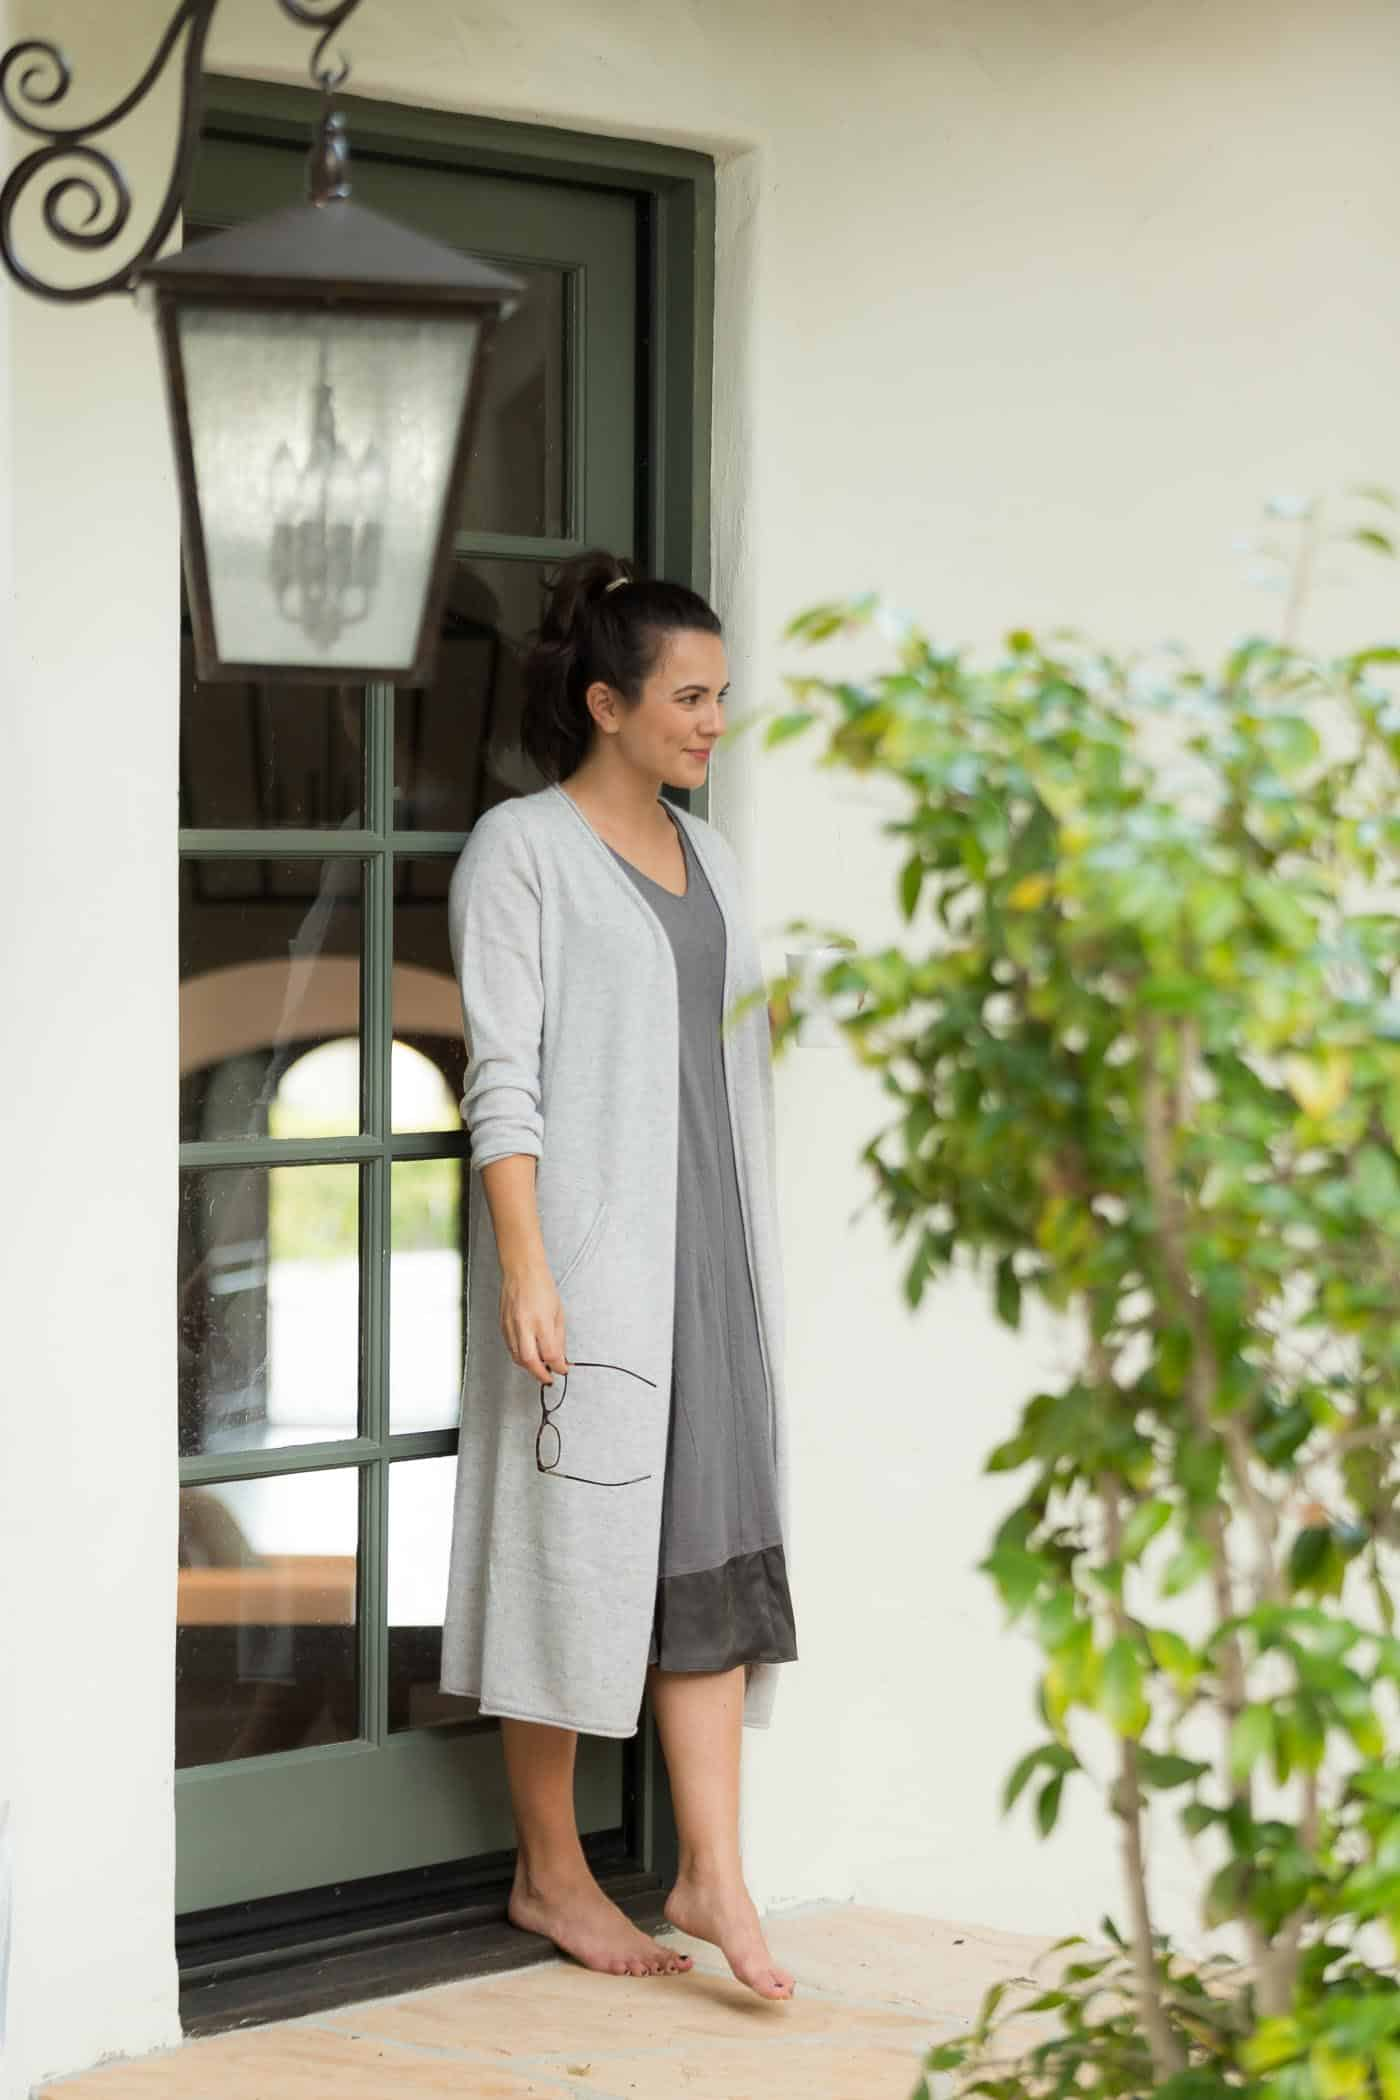 How To Upgrade Your Loungewear And Look Put Together, morning coffee, Cashmere cardigan, sleep dress - My Style Vita @mystylevita